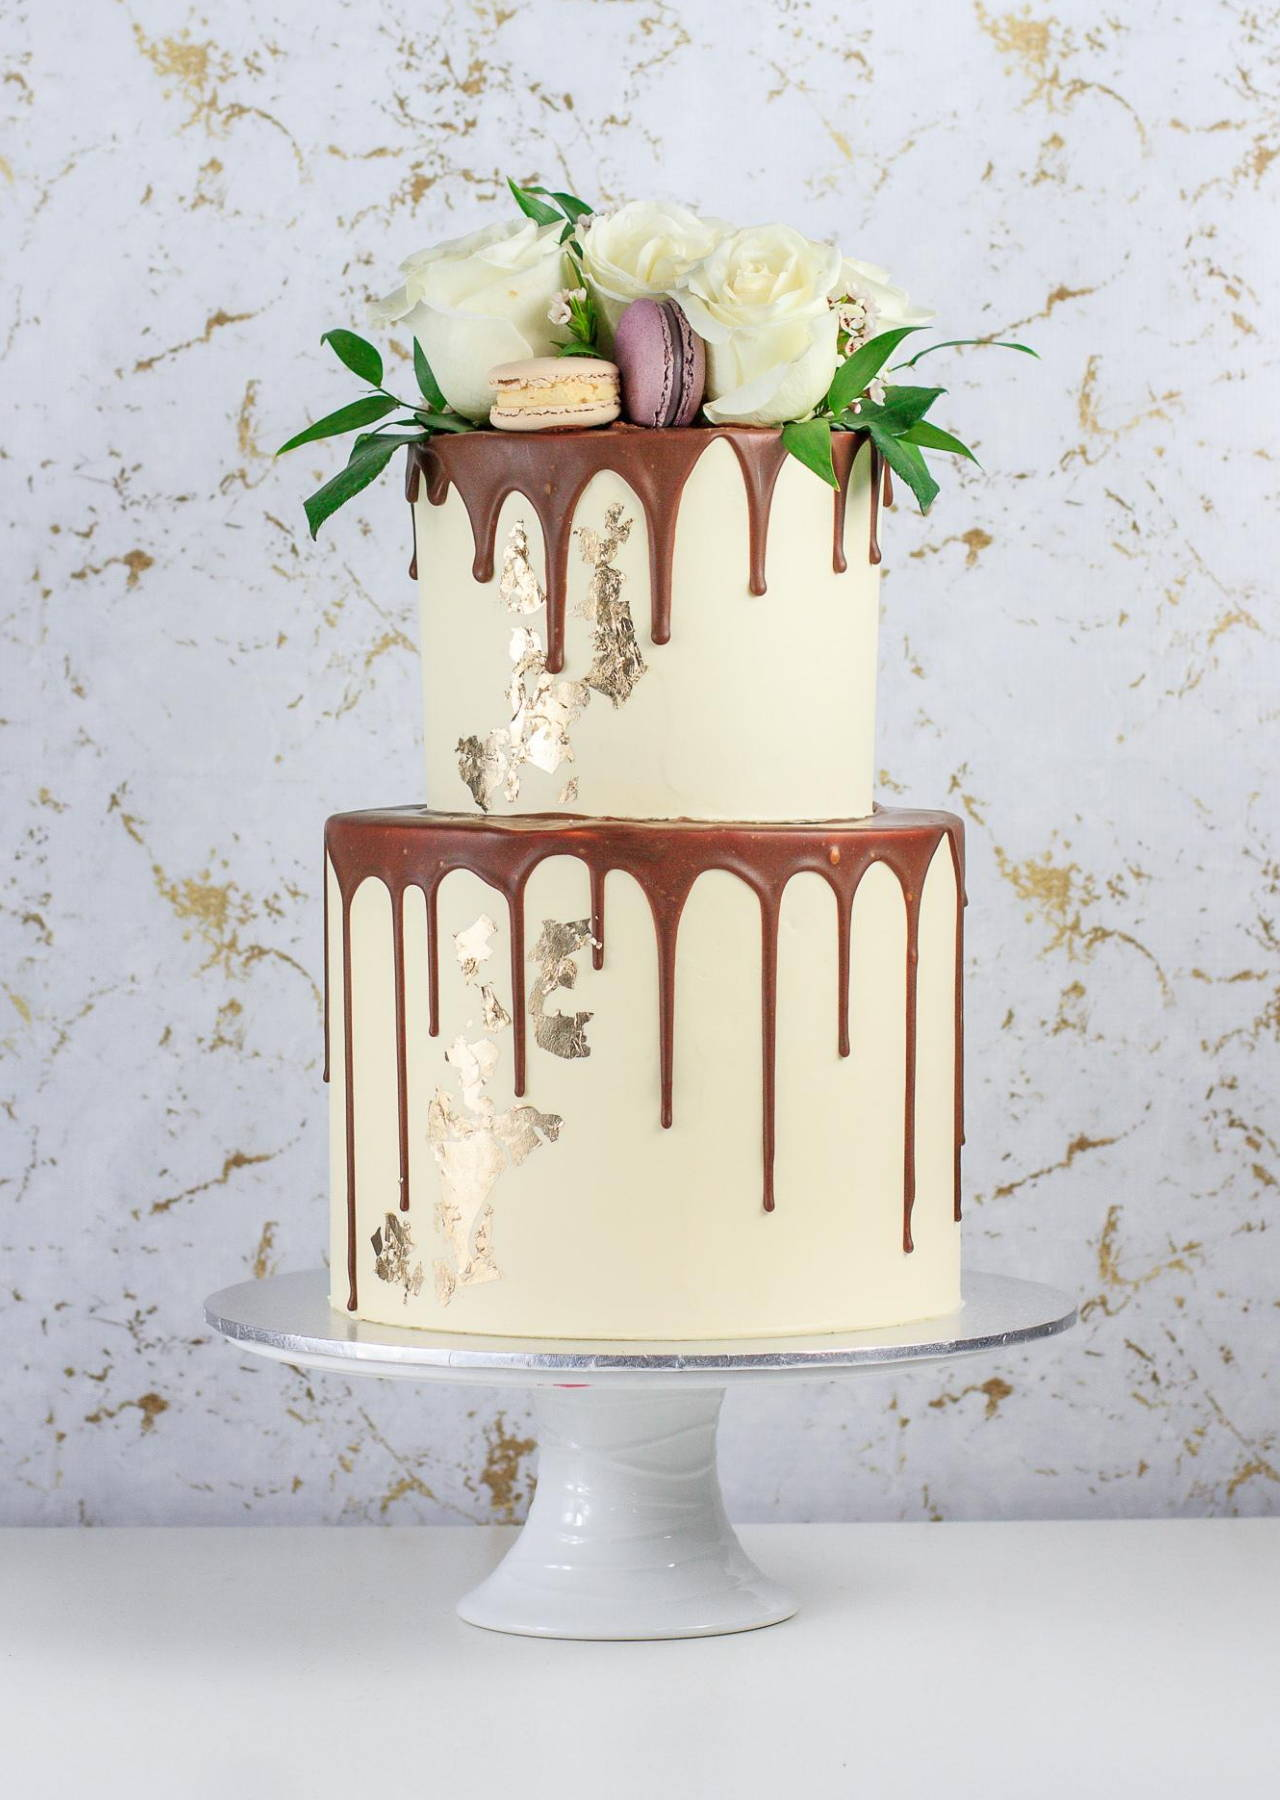 2 Tier Custom Cake with Chocolate Drip, Gold Foil, White Florals and Macarons